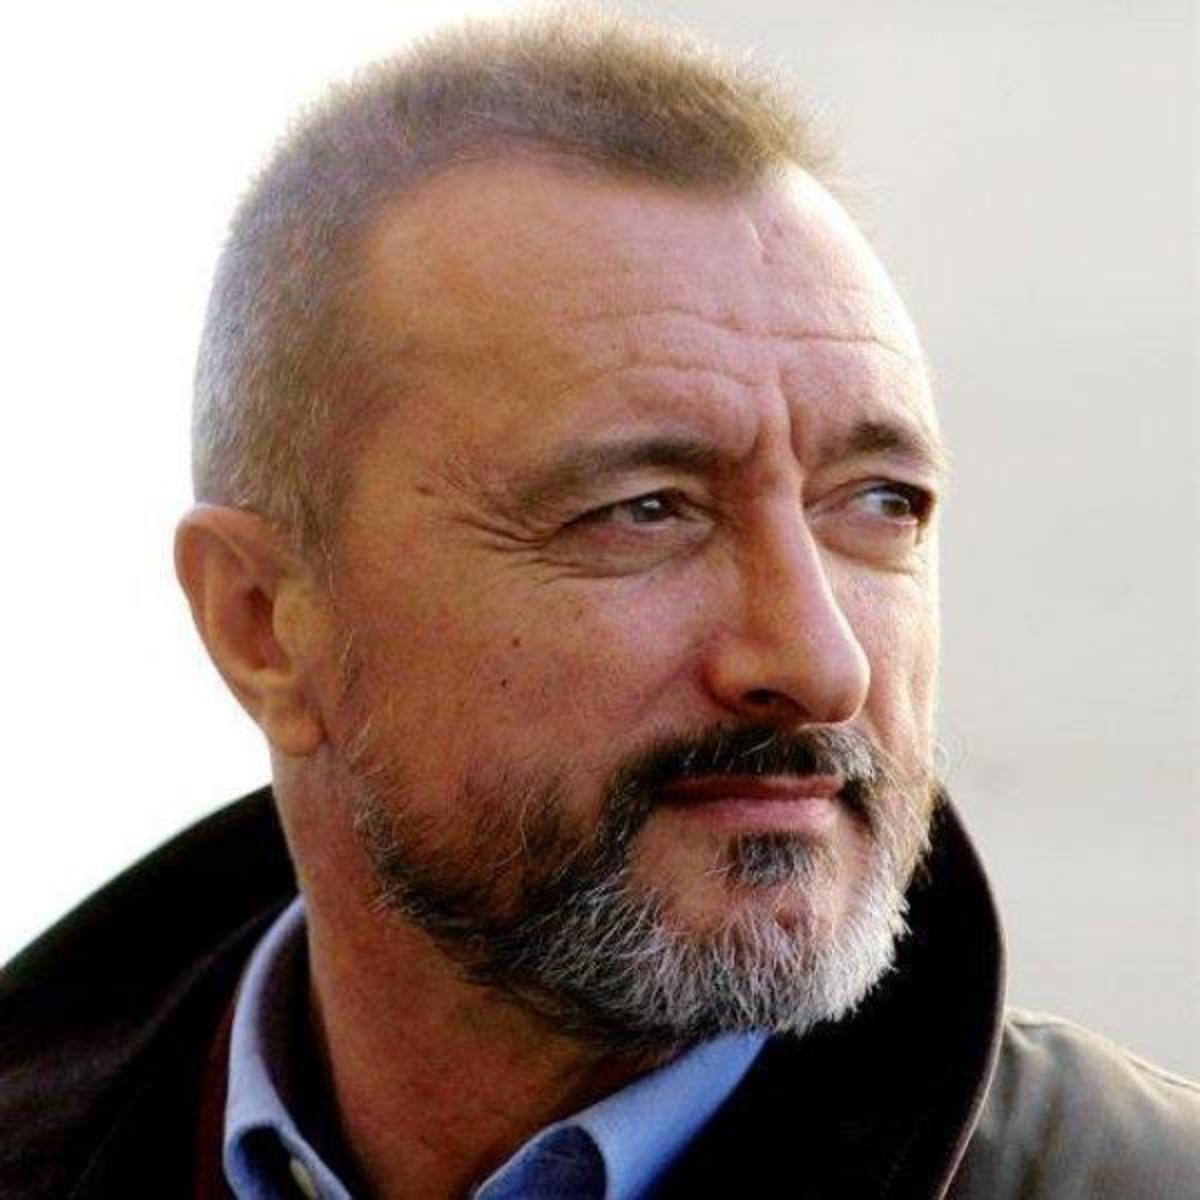 Arturo Pérez- Reverte : His pen and his (s)words